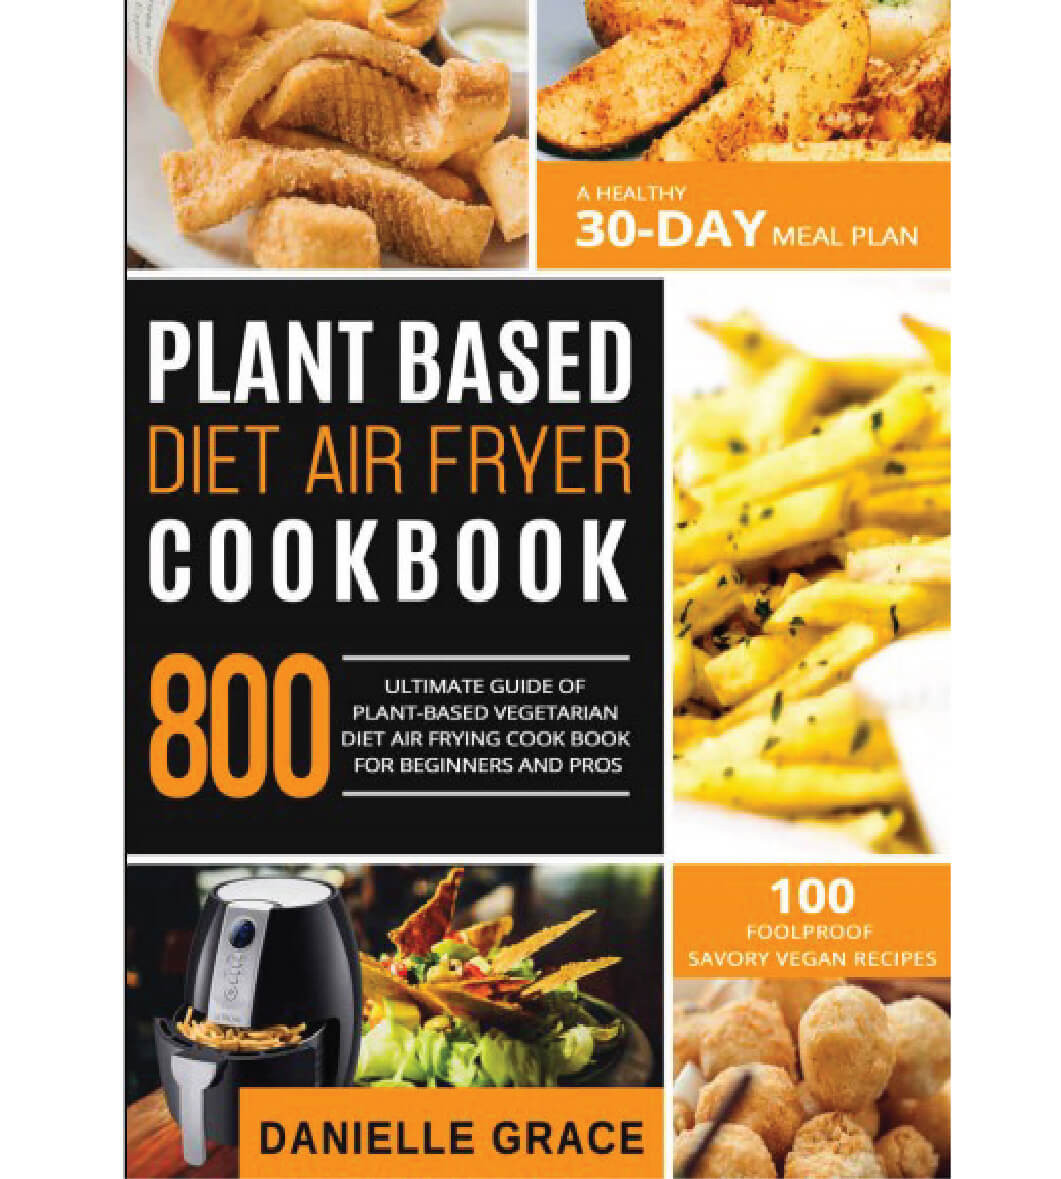 Air Fryer Plant Based Recipes  Plant Based Diet Air Fryer Cookbook 800 Ultimate Guide of